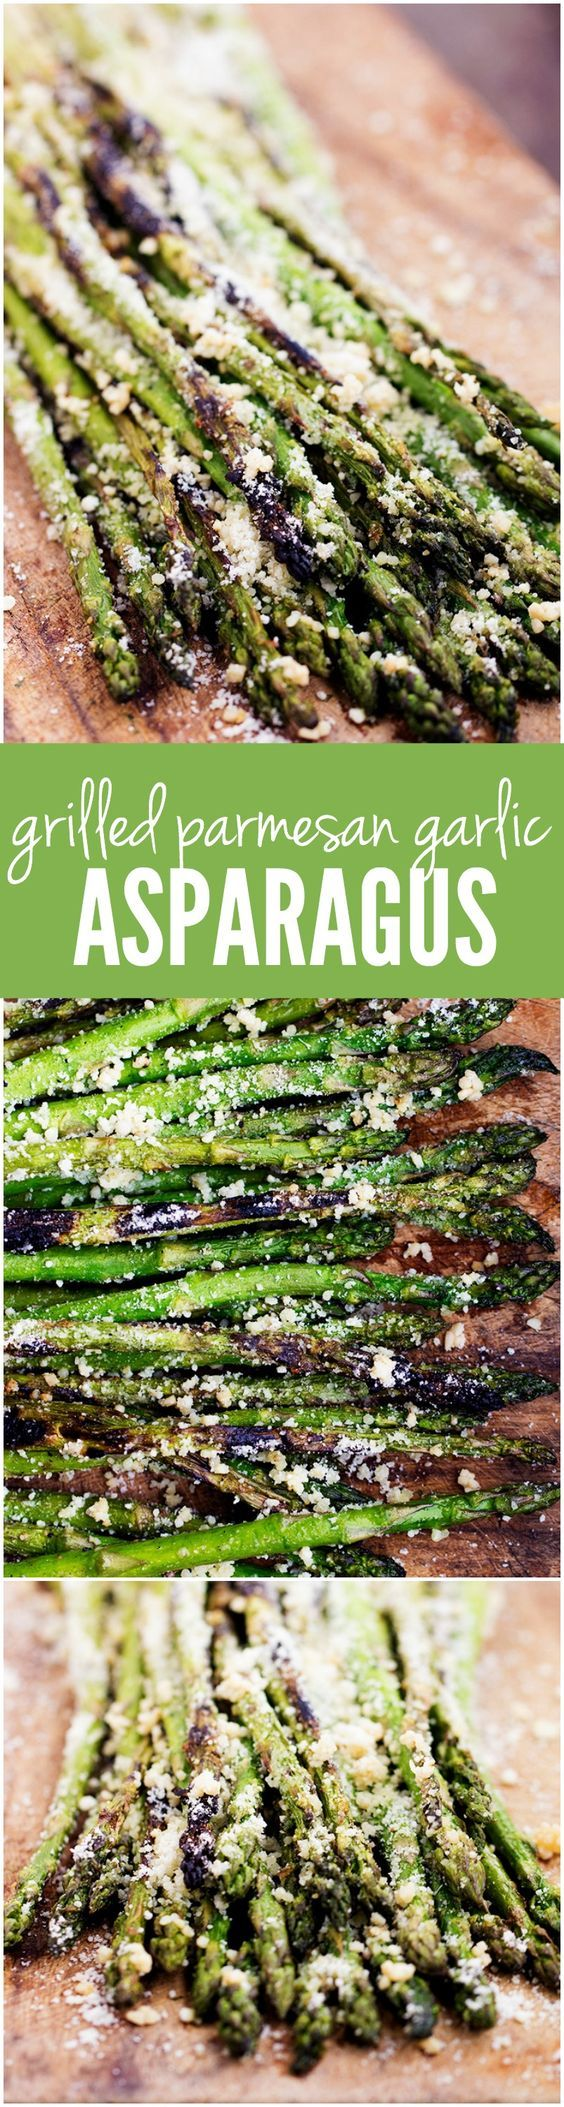 This Grilled Parmesan Garlic Asparagus is the BEST side! The smoky charred edges add so much delicious flavor to this tender asparagus!